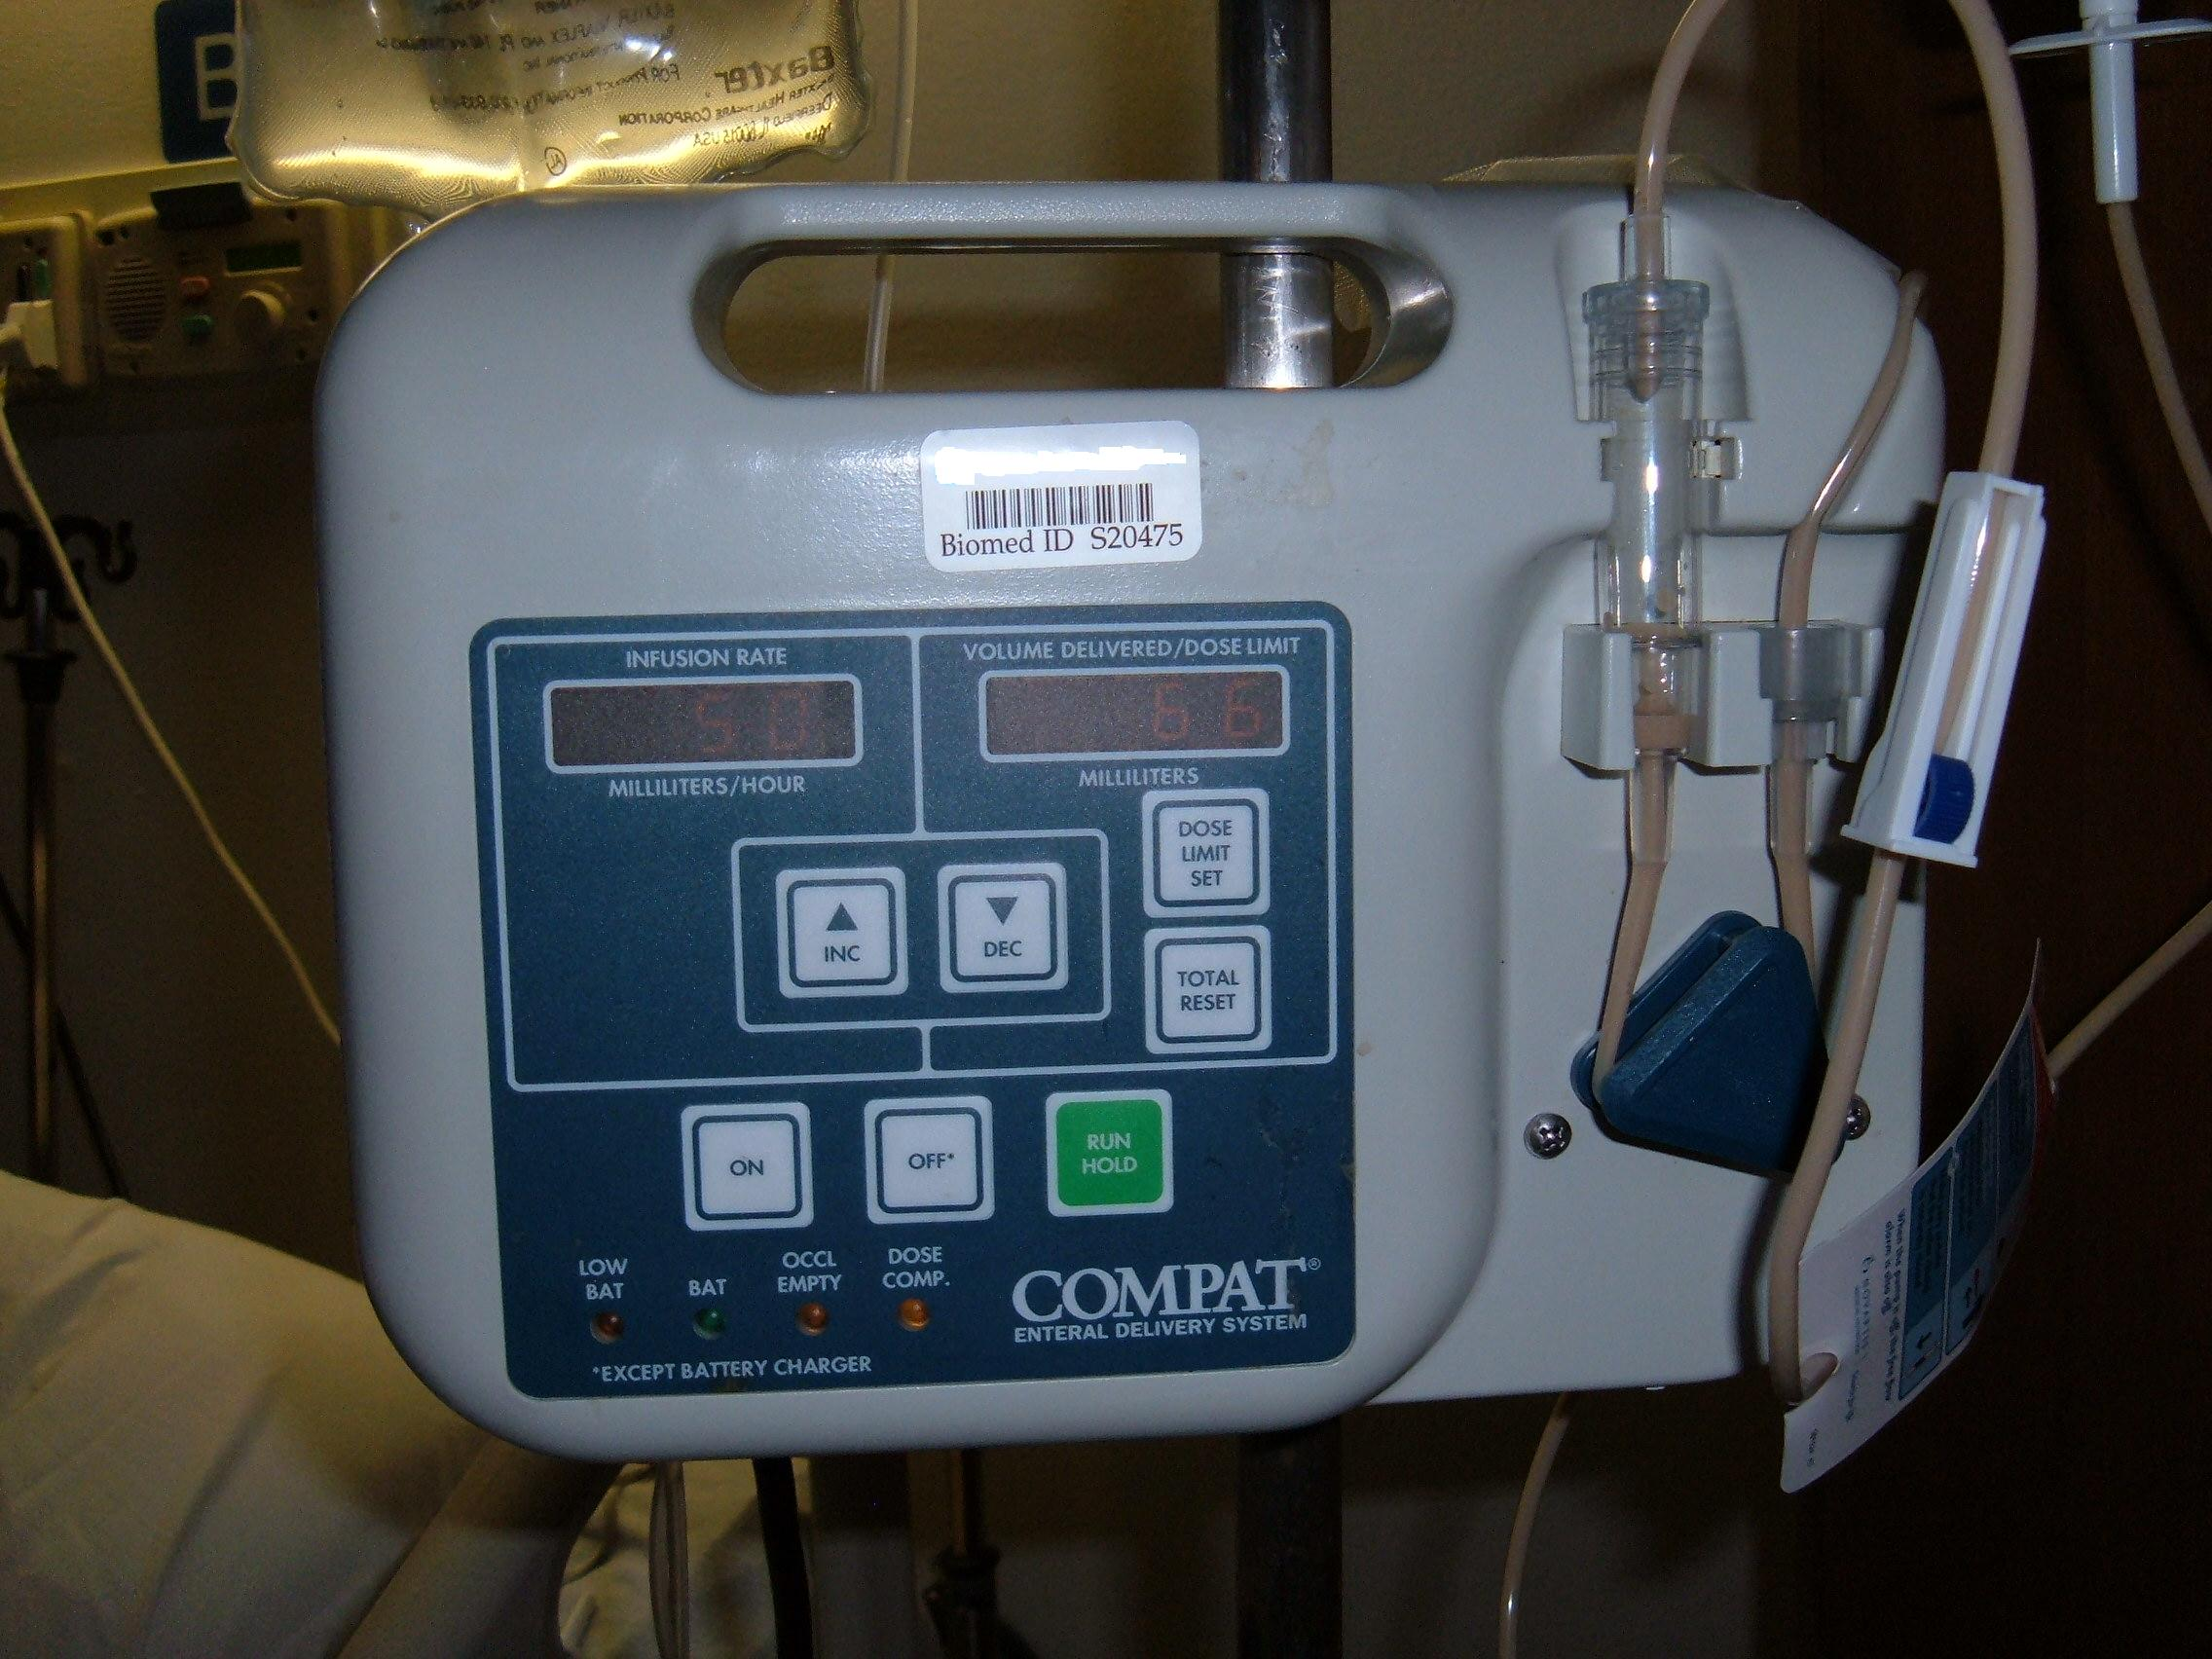 compat enteral delivery system instructions